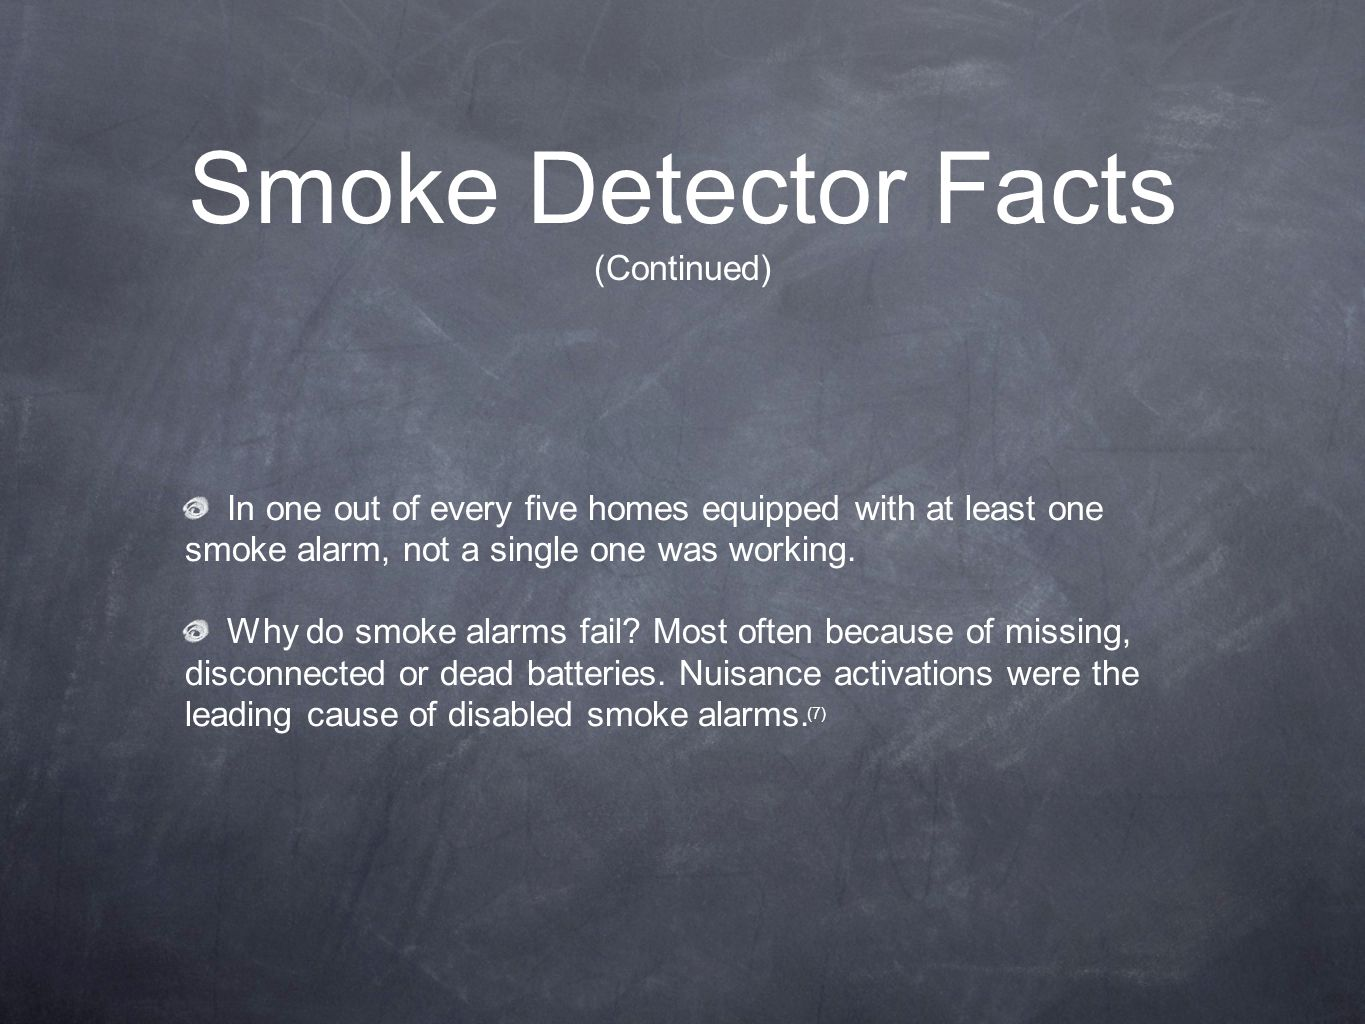 Smoke Detector Facts (Continued) In one out of every five homes equipped with at least one smoke alarm, not a single one was working.